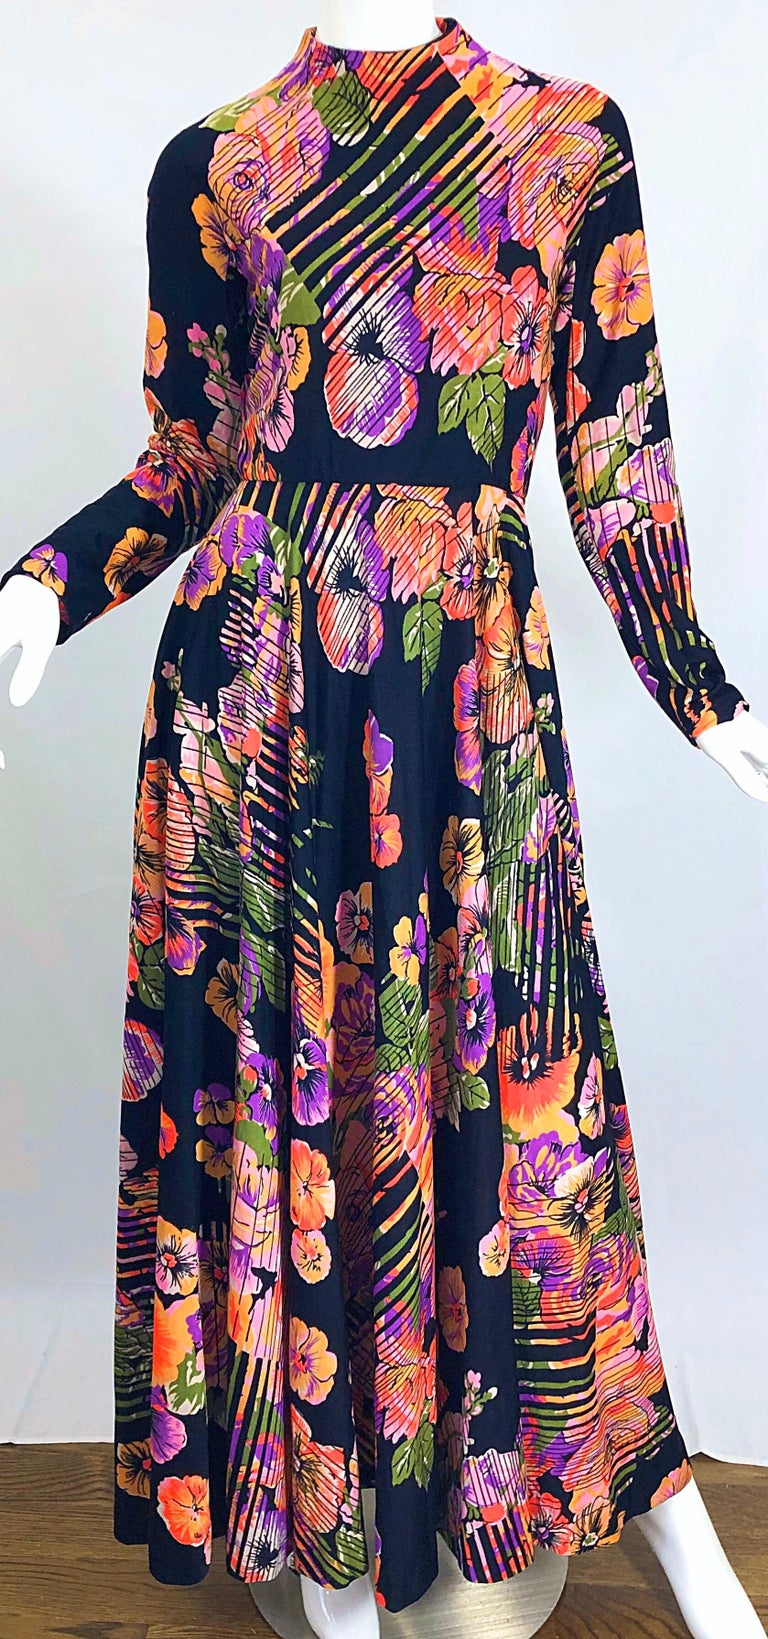 Geoffrey Beene 1970s Abstract Flower Print Long Sleeve High Neck 70s Maxi Dress For Sale 5